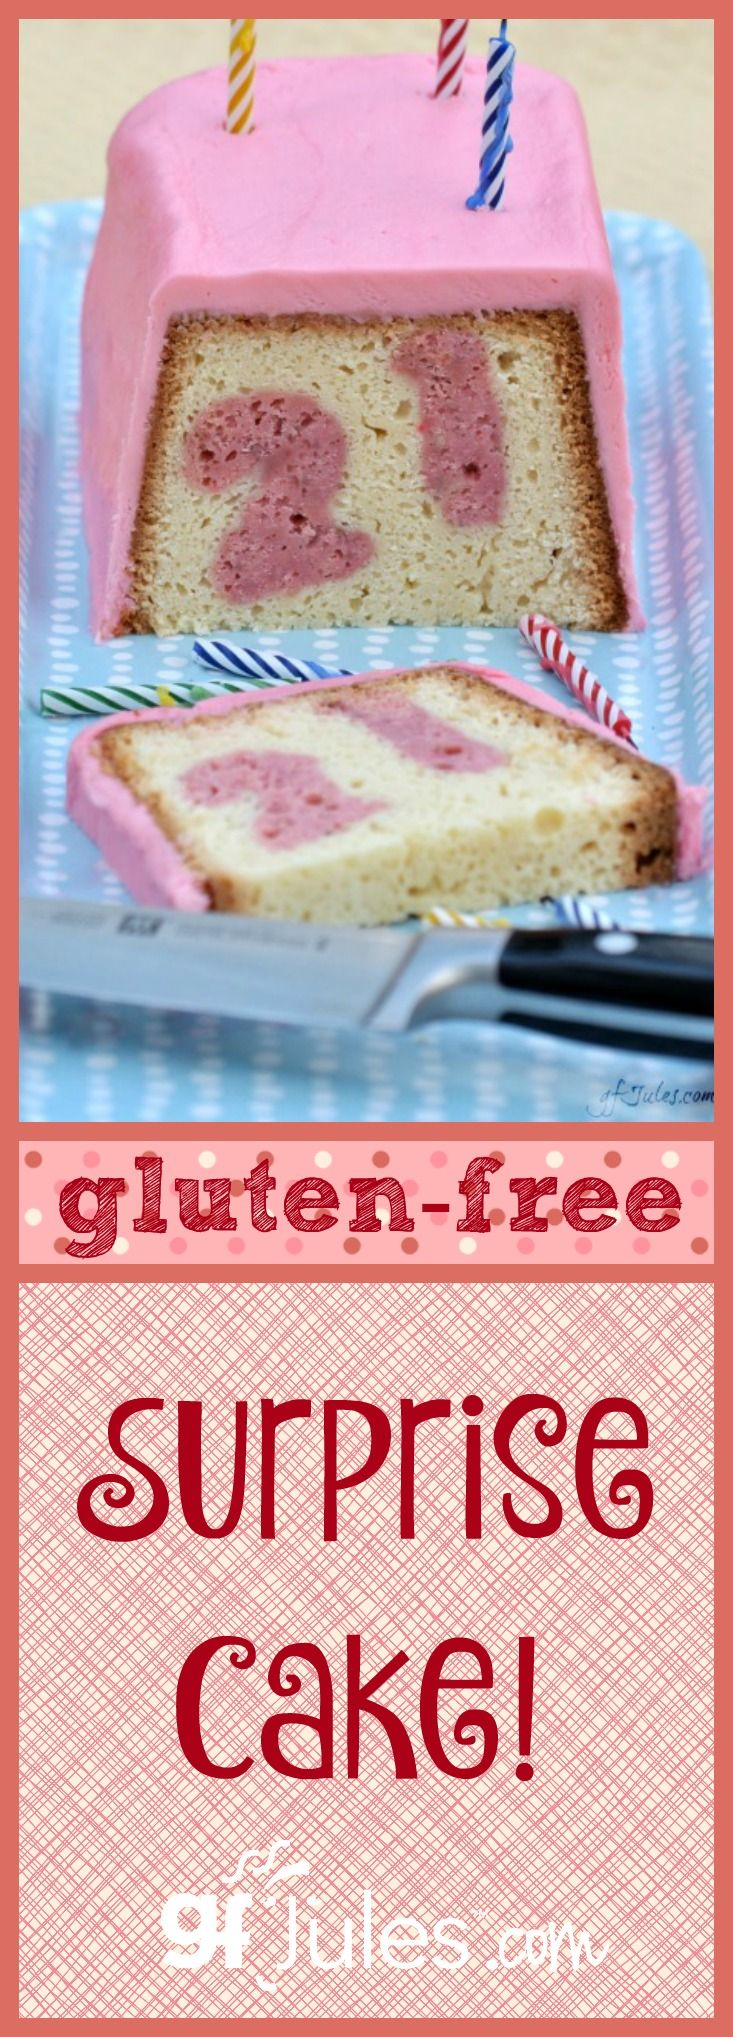 This Gluten Free Surprise Cake may look unassuming, but slice into it to reveal any hearts, shamrocks, stars, numbers...you can imagine baked right inside! Dairy-Free Gluten-Free |gfJules.com